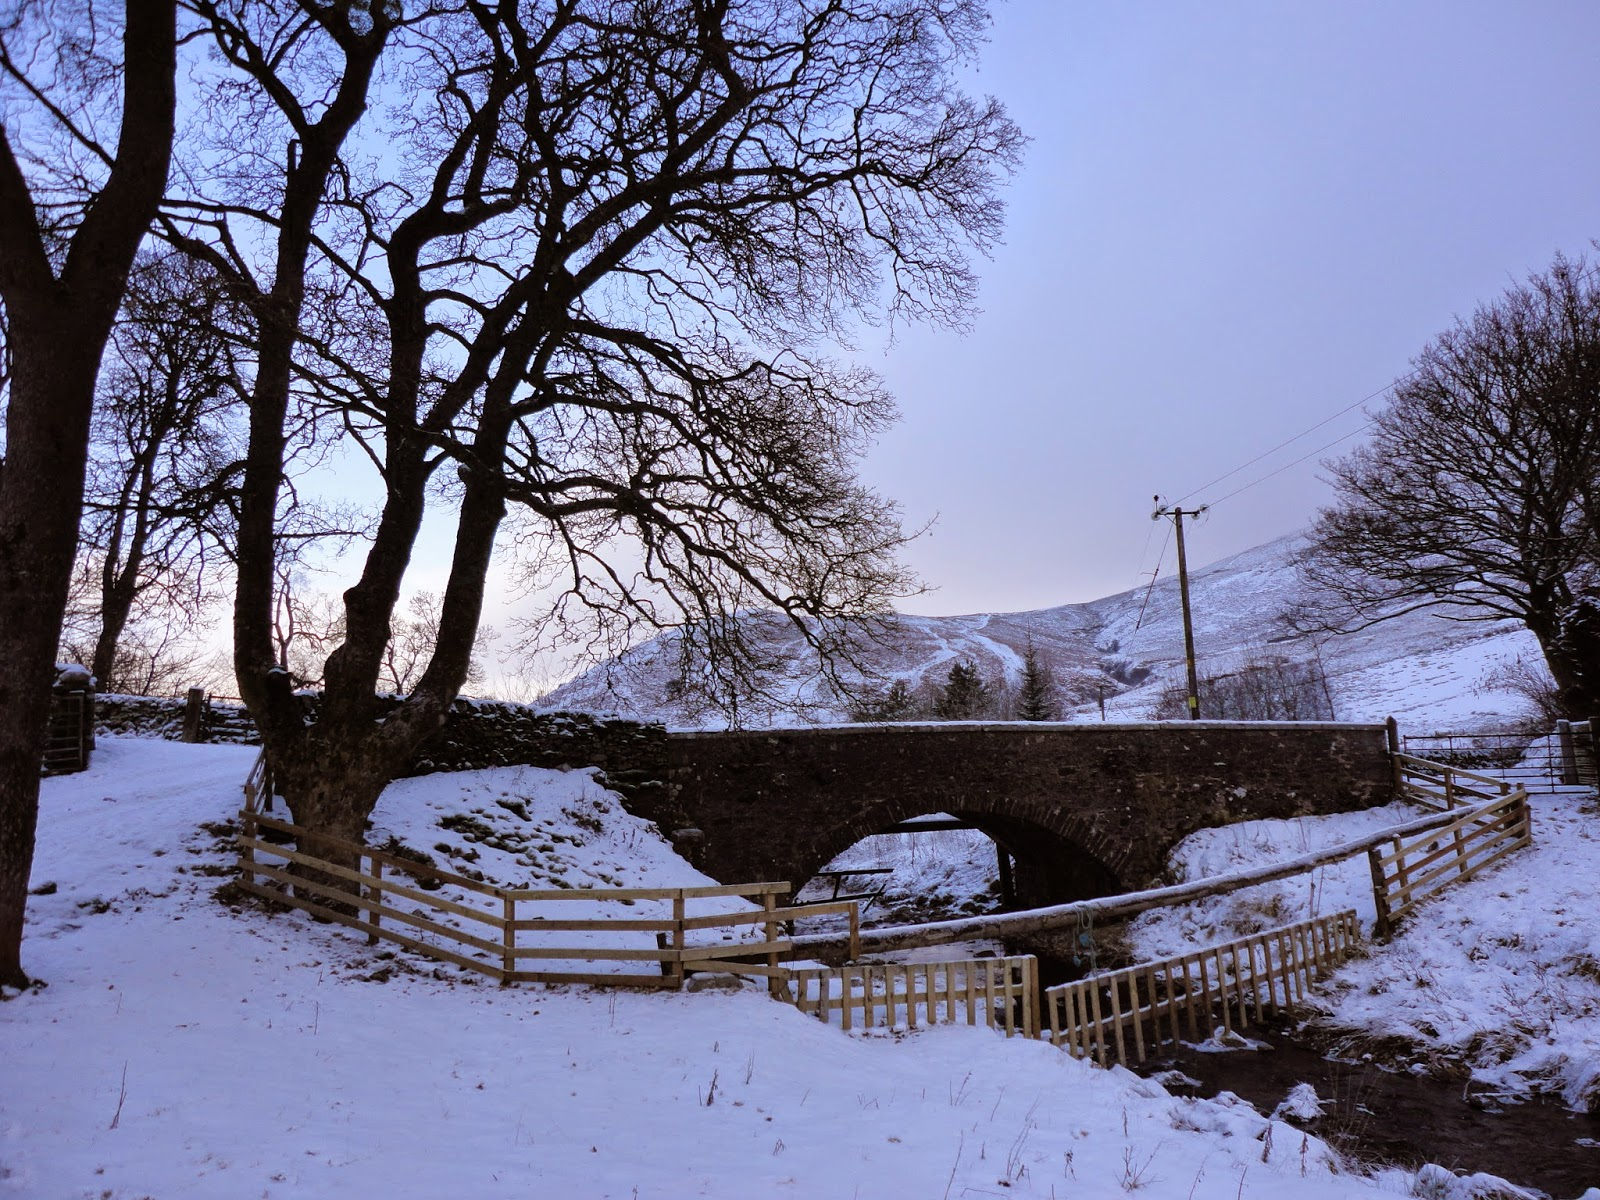 country farm landscape with trees, hills, river, bridge and snow in winter in scotland